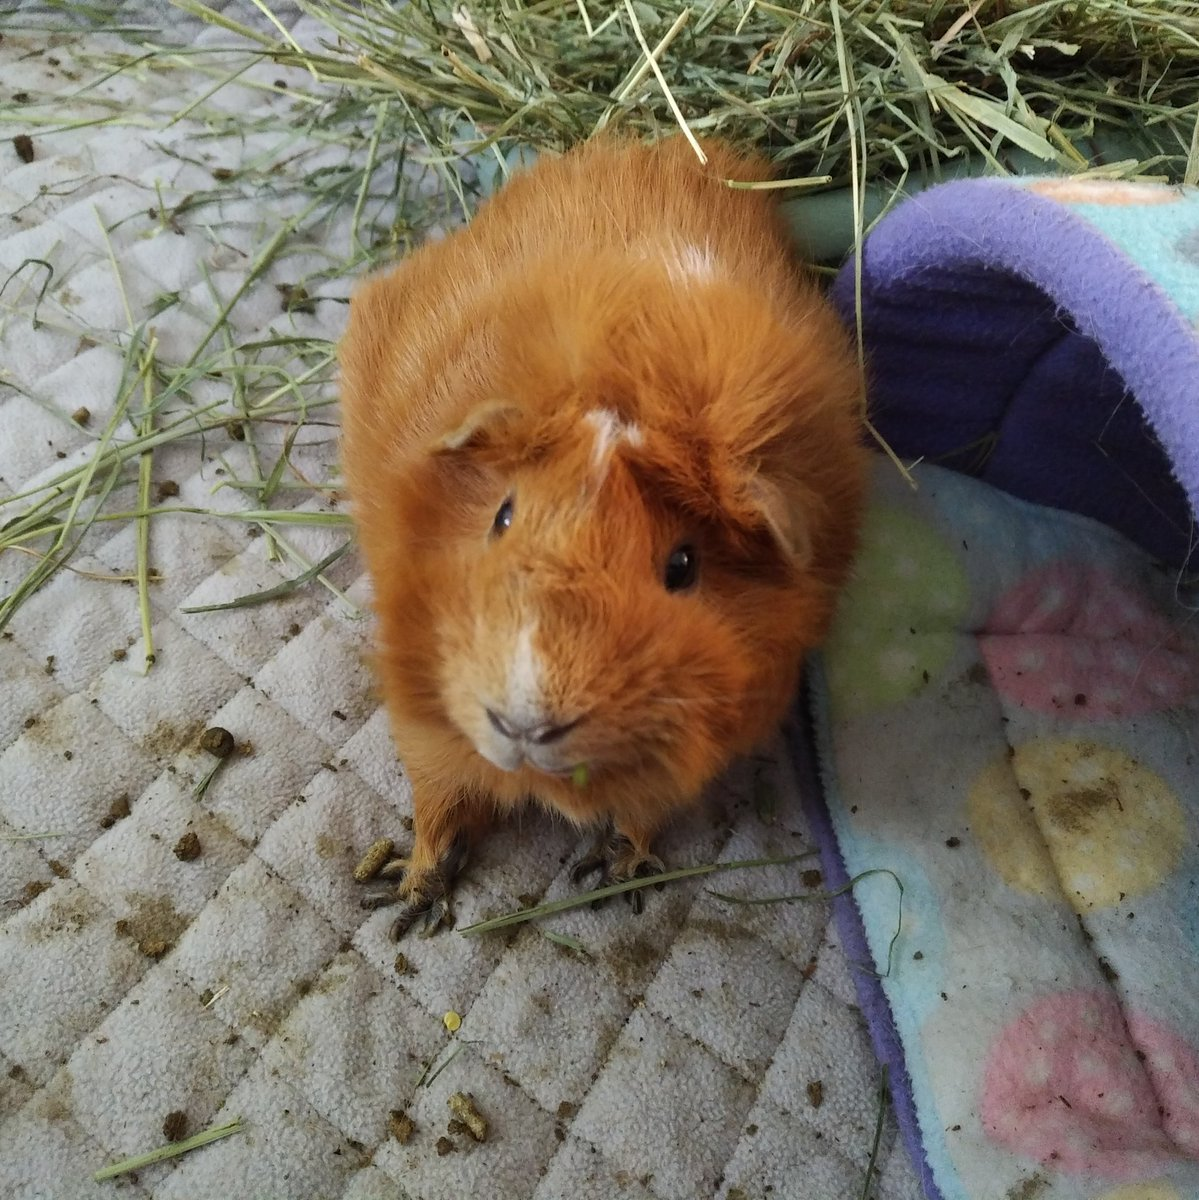 Remember when Red was a foster pig? Lol. Who are we kidding anyway, Mama always knew he was home  #RedLove #guineapig #mondaythoughts #MondayMorning #cute #fluffy #animalspic.twitter.com/jqpXi6a5bz